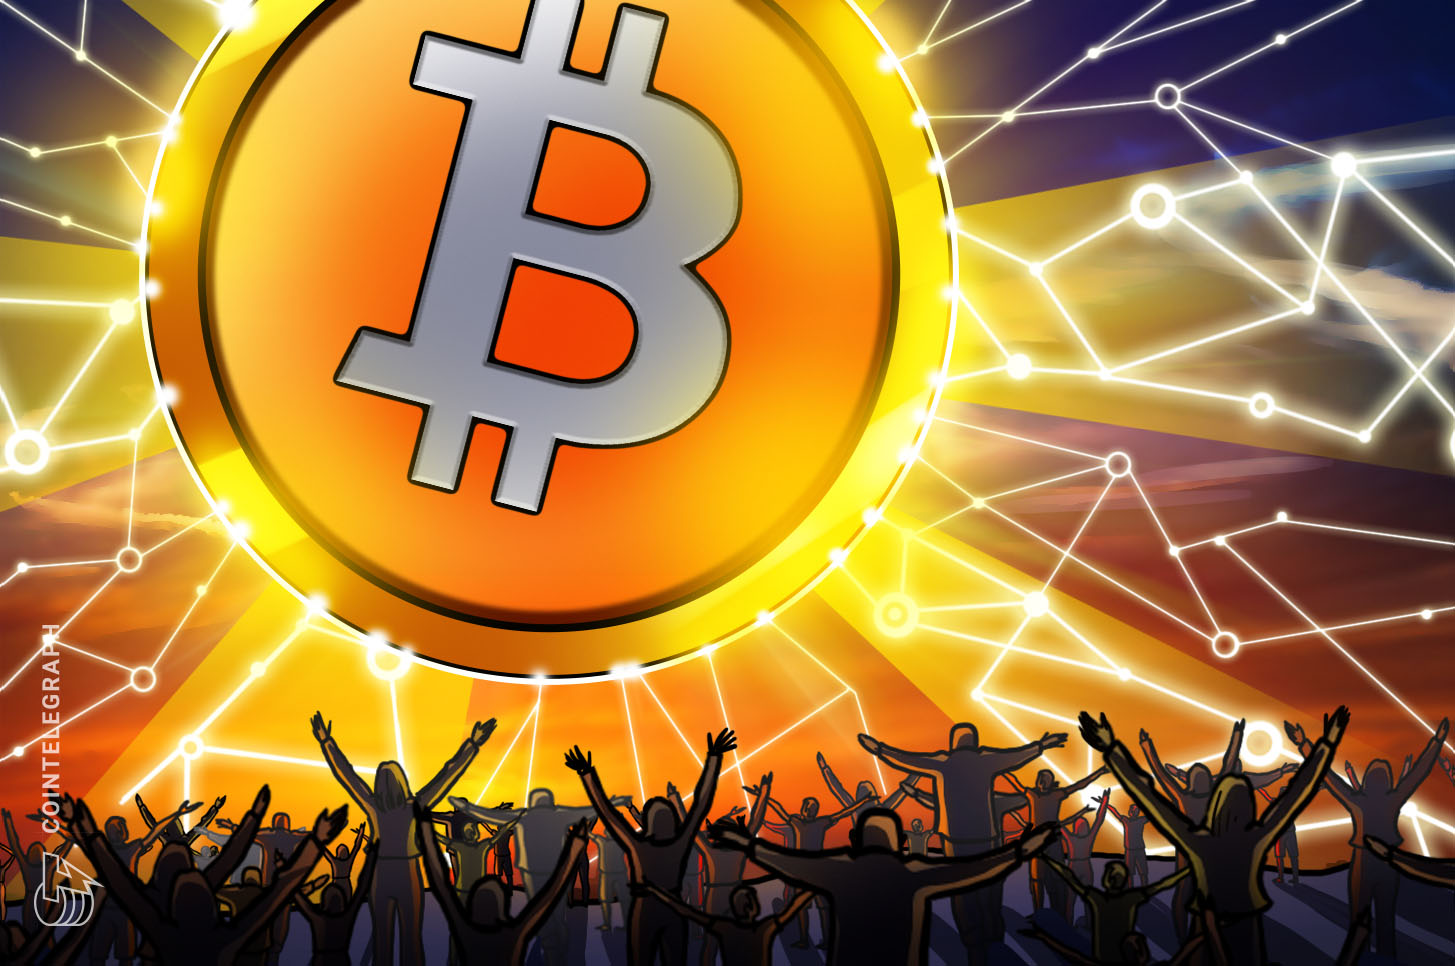 Bitcoin analyst says 'supply shock' underway as BTC withdrawal rate spikes to one-year high